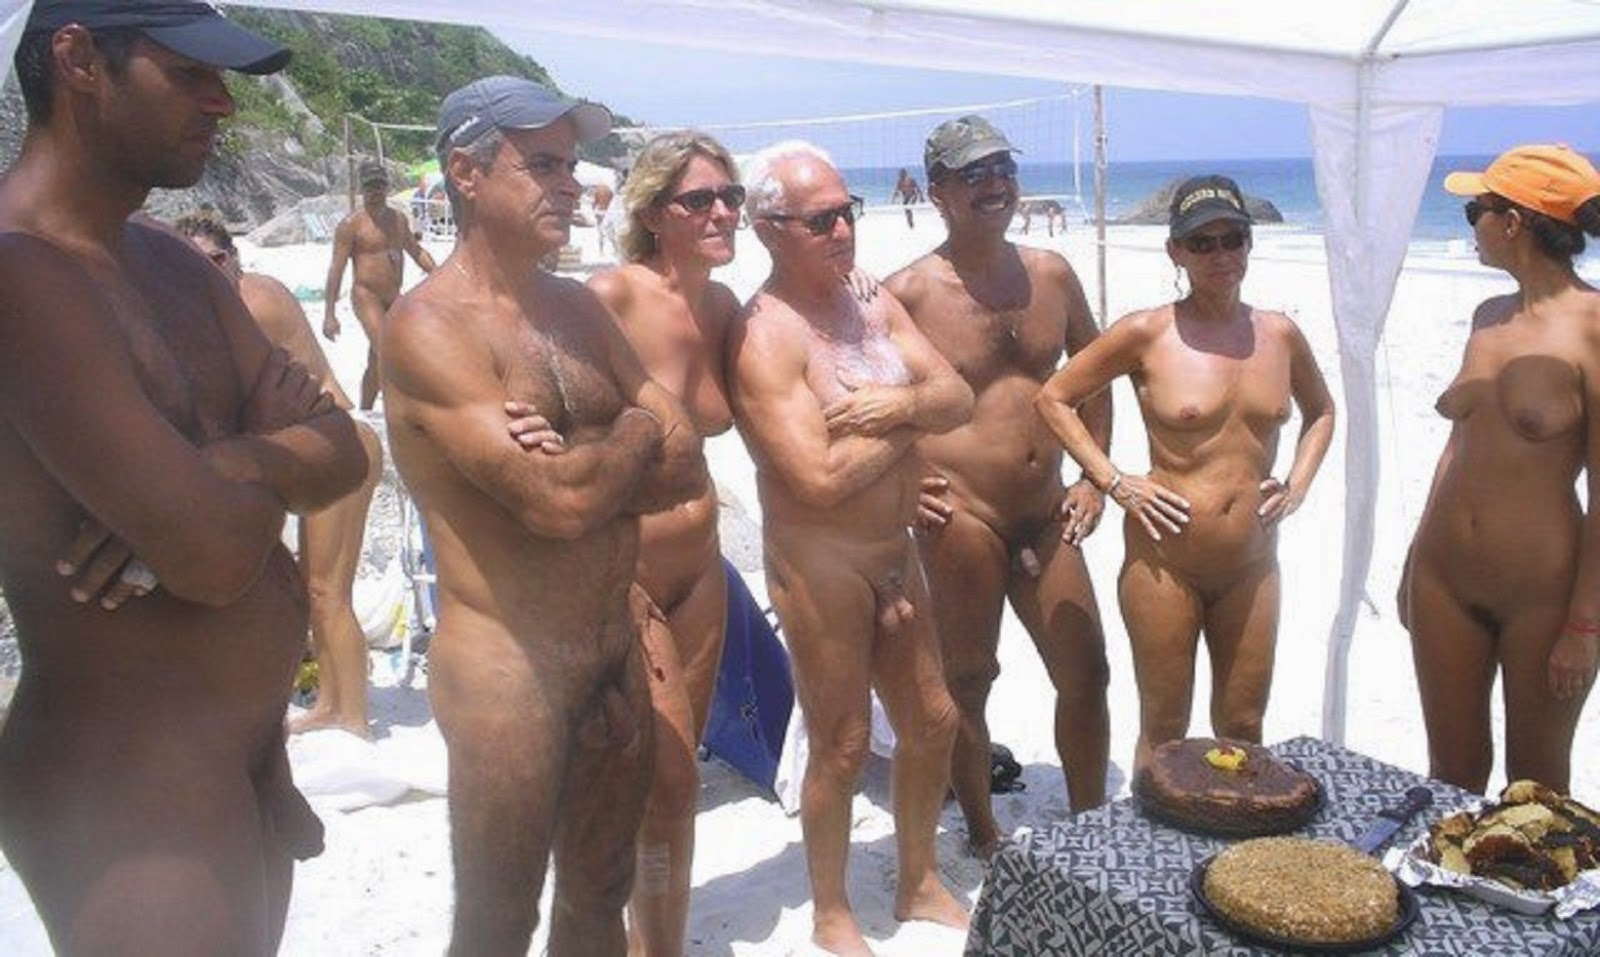 Have contos de famlia nuas em praias de nudismo think, that